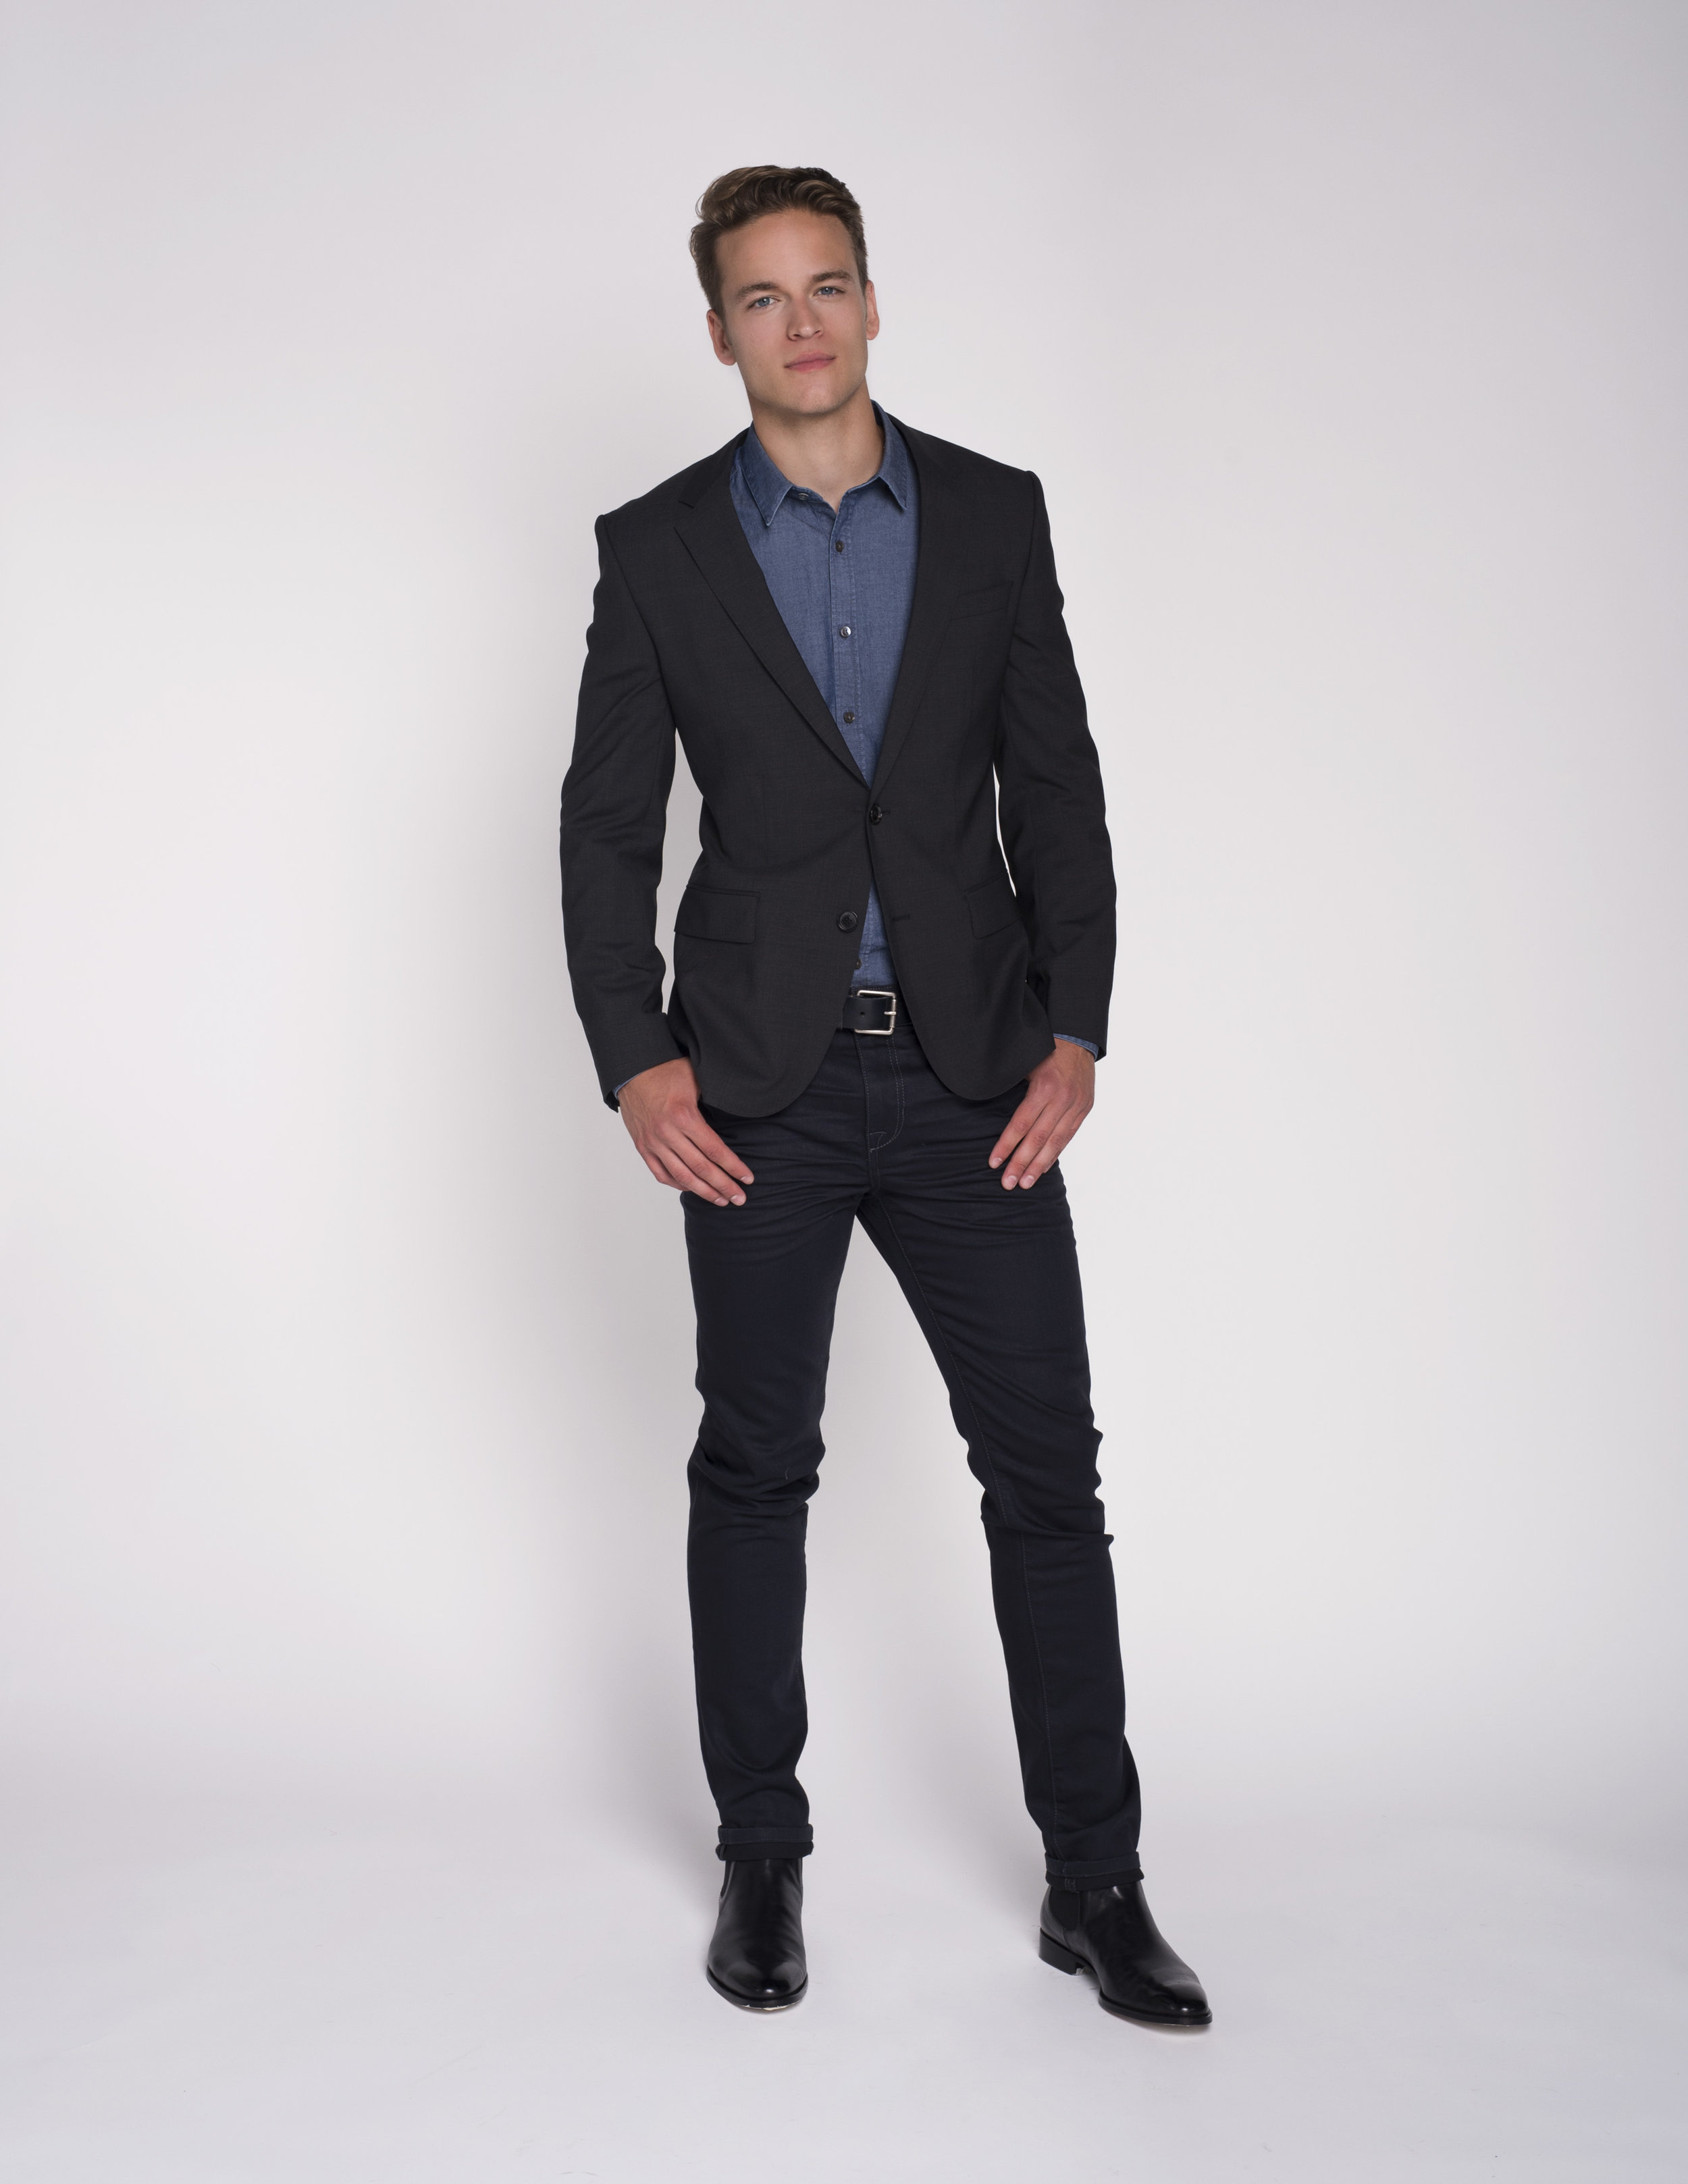 calgary stylist business casual job interview